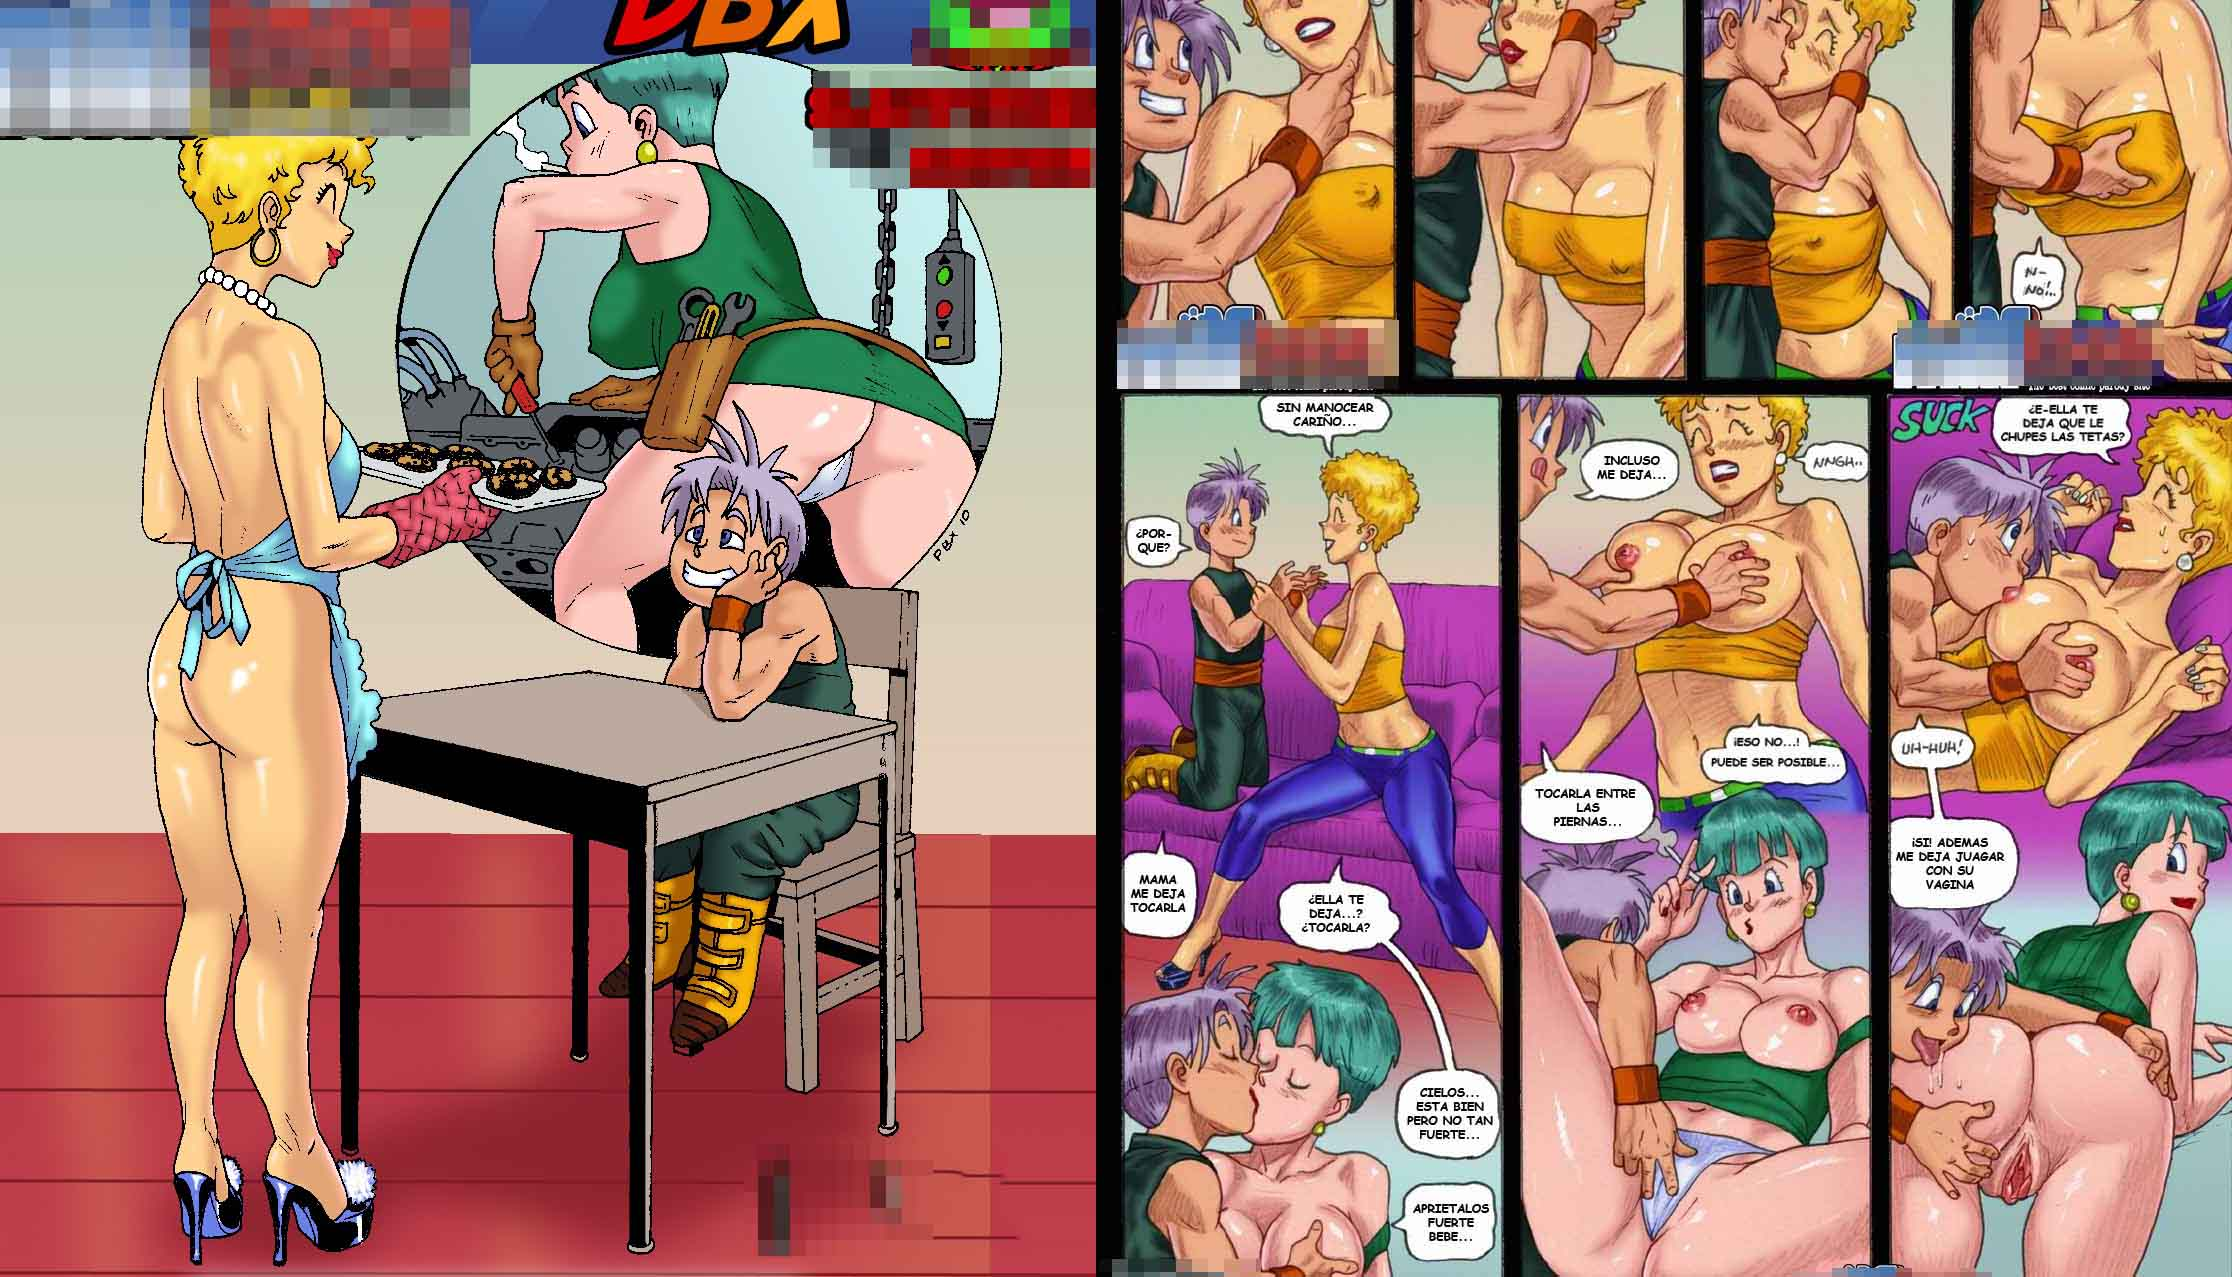 Porn dragon ball z bulma comic DAT KONTJE!